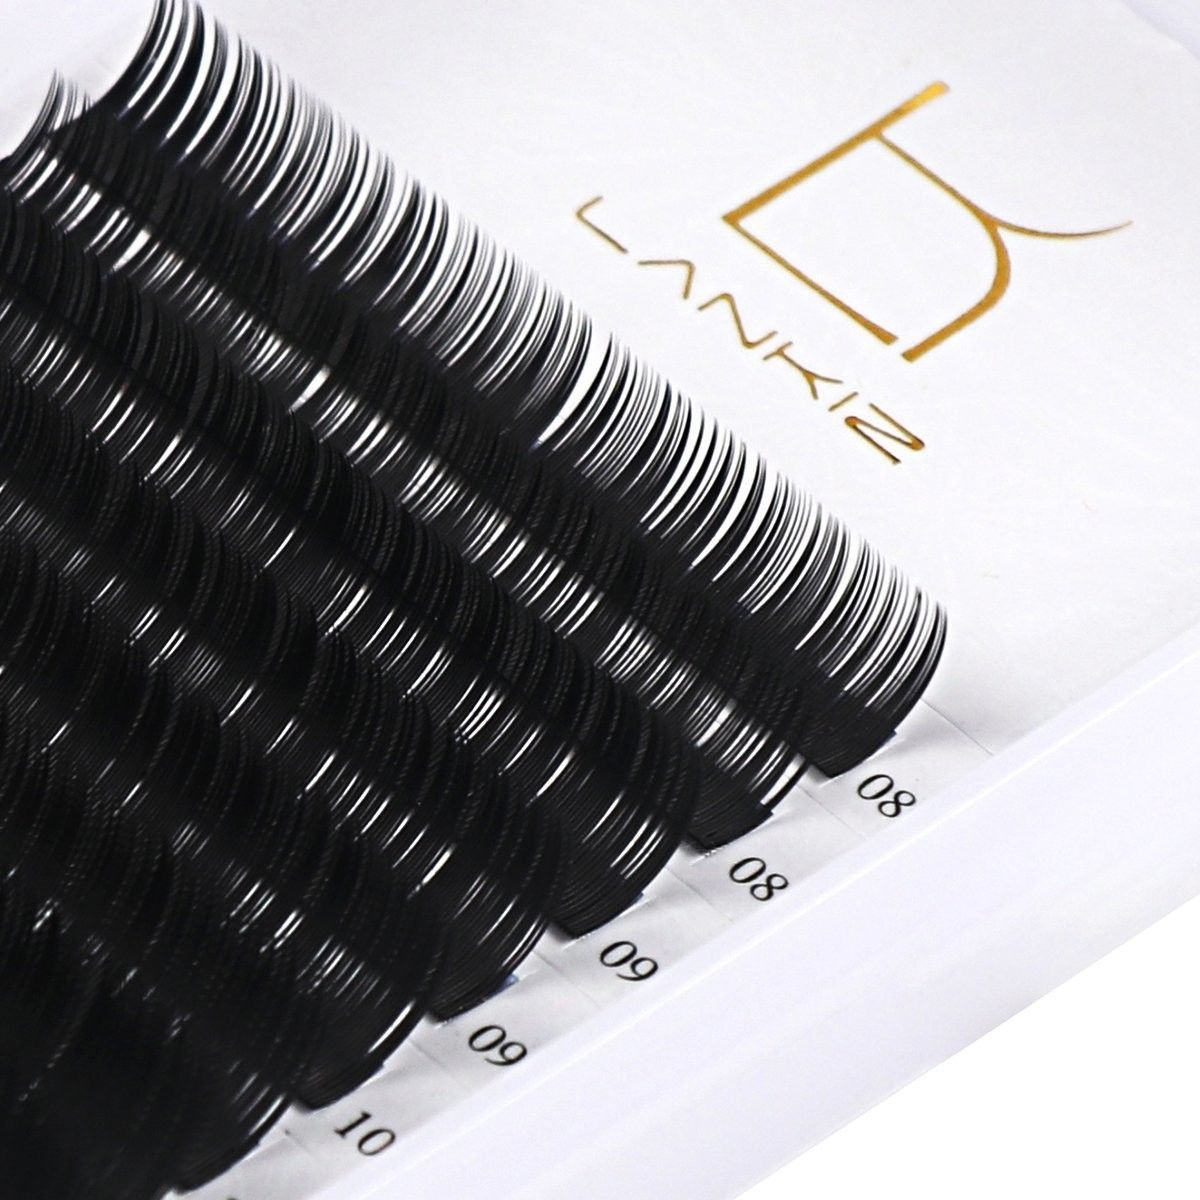 Primary image for False Eyelash Extensions C Curl 0.20 mm Regular 8-14 mm Mixed Tray Kit Long 3d S